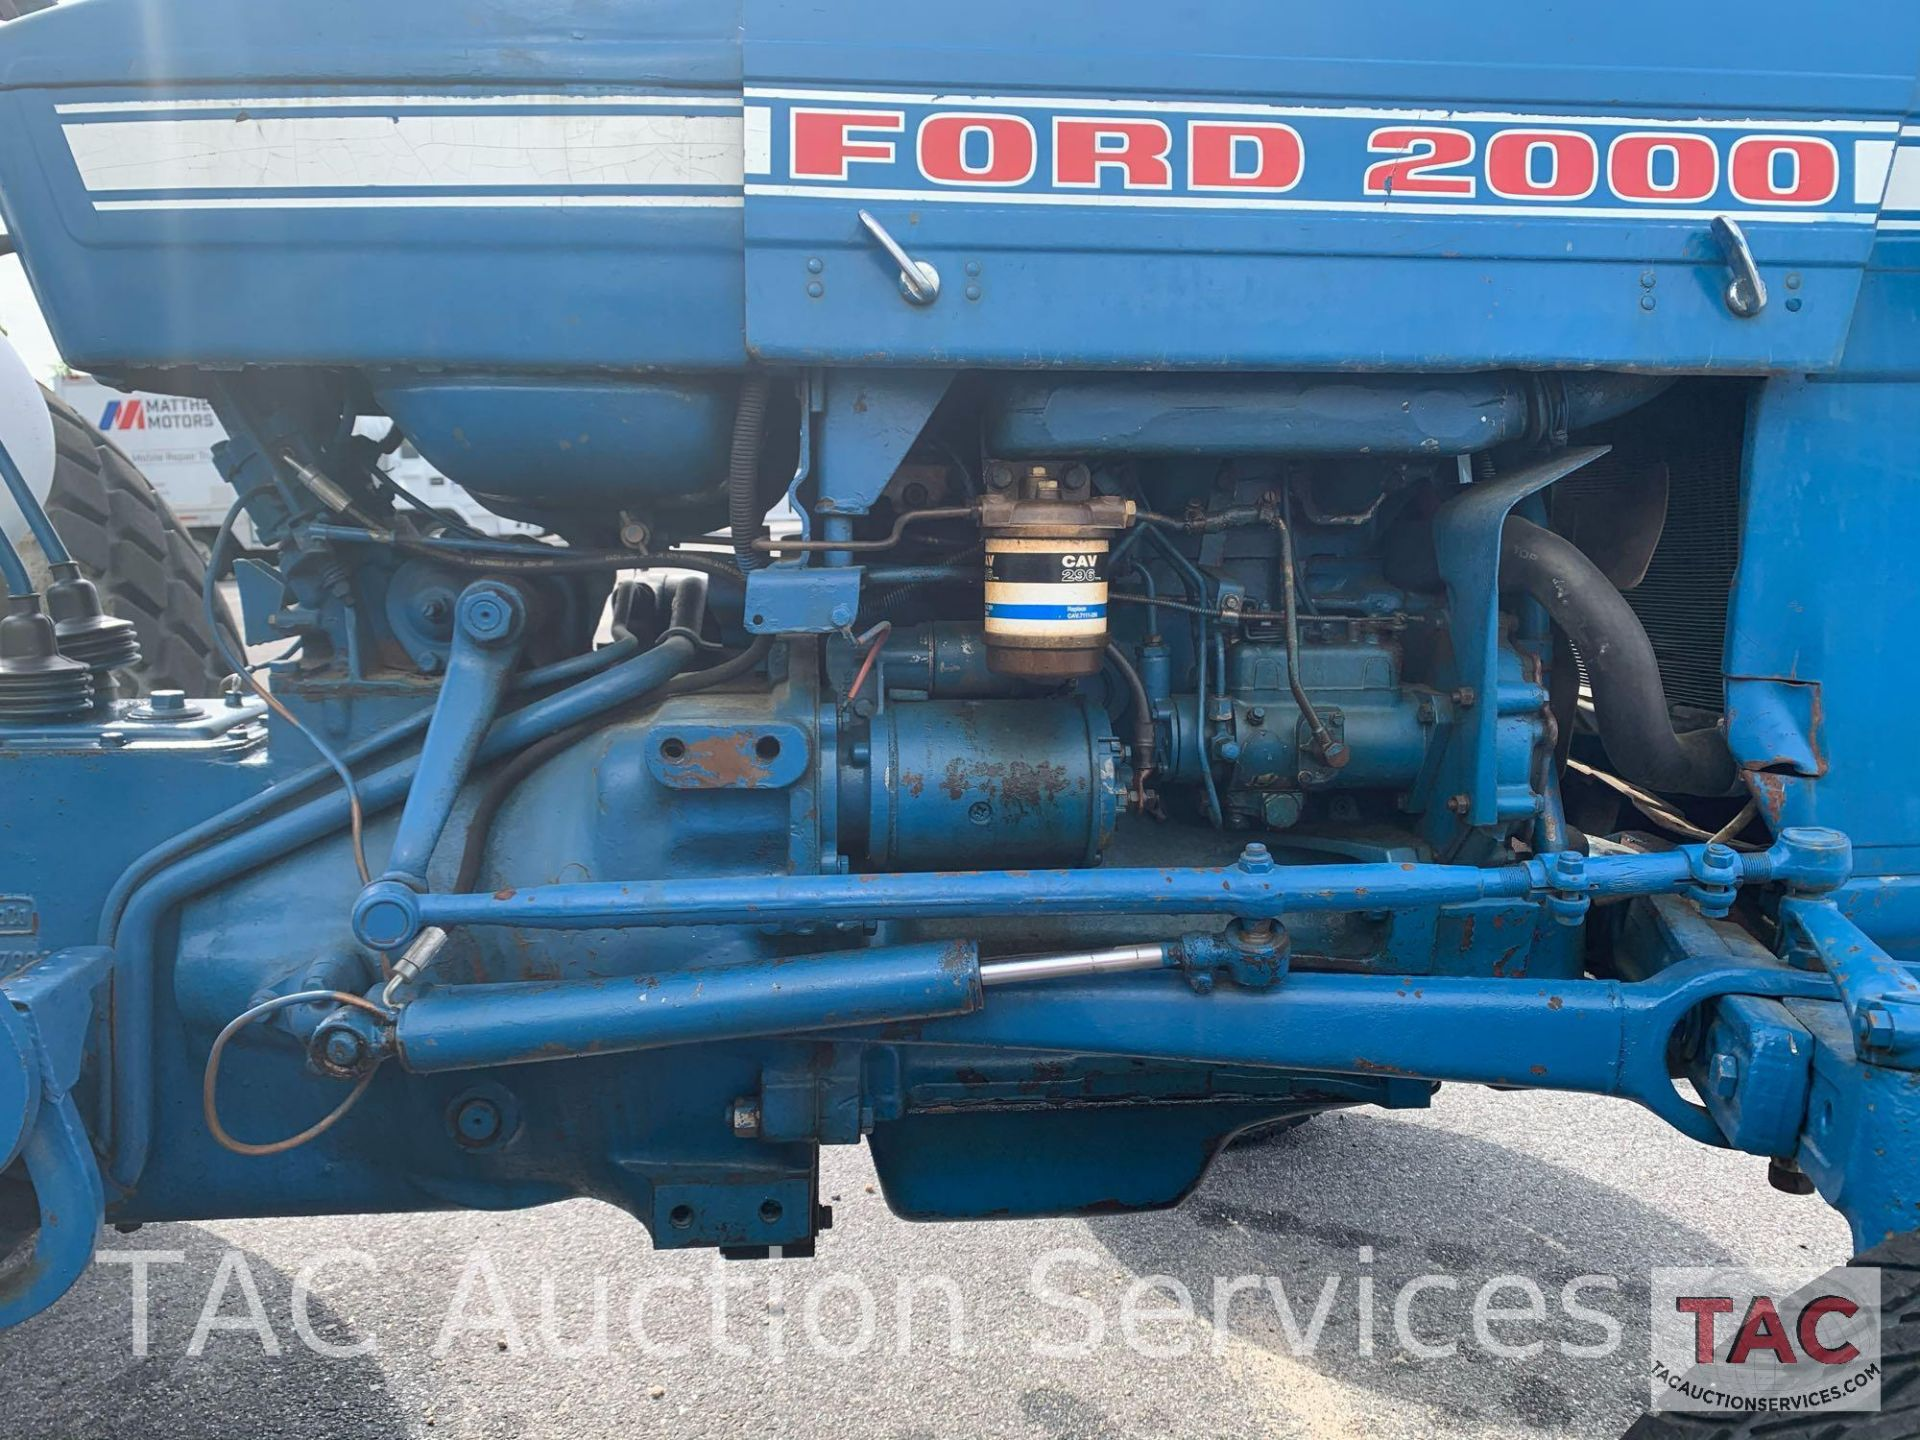 Ford 2000 Farm Tractor - Image 13 of 28